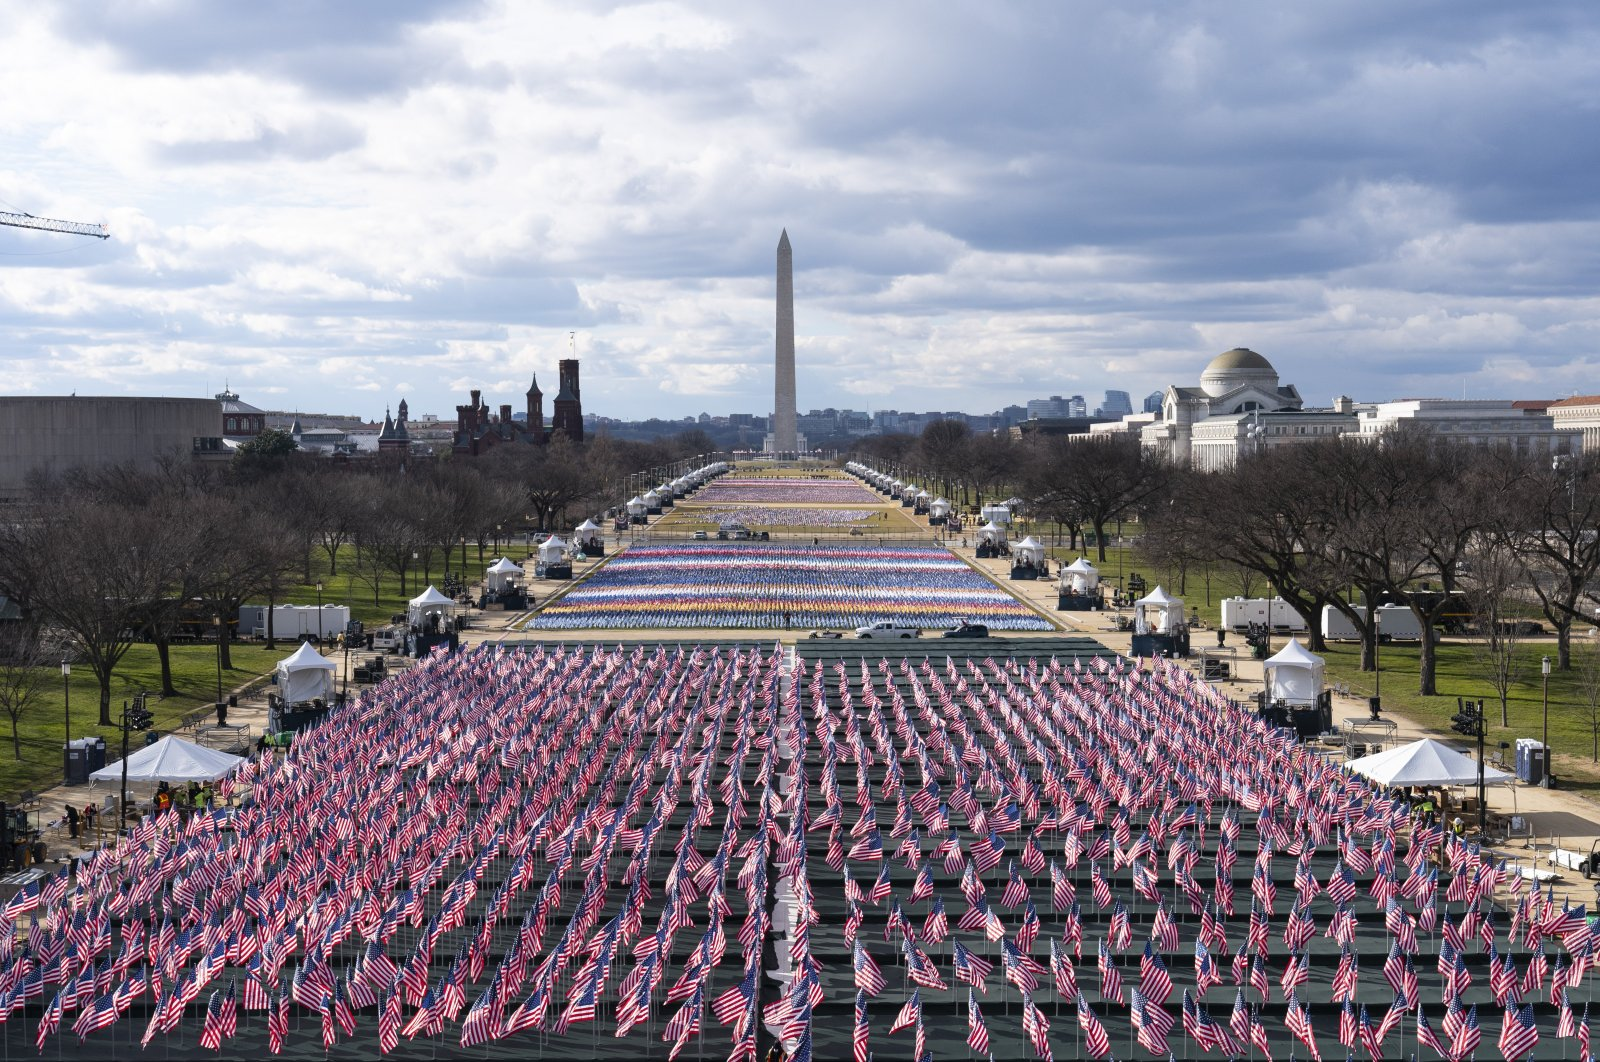 Flags are placed on the National Mall ahead of Joe Biden's inauguration ceremony, Washington, D.C., the U.S., Jan. 18, 2021. (AP Photo)